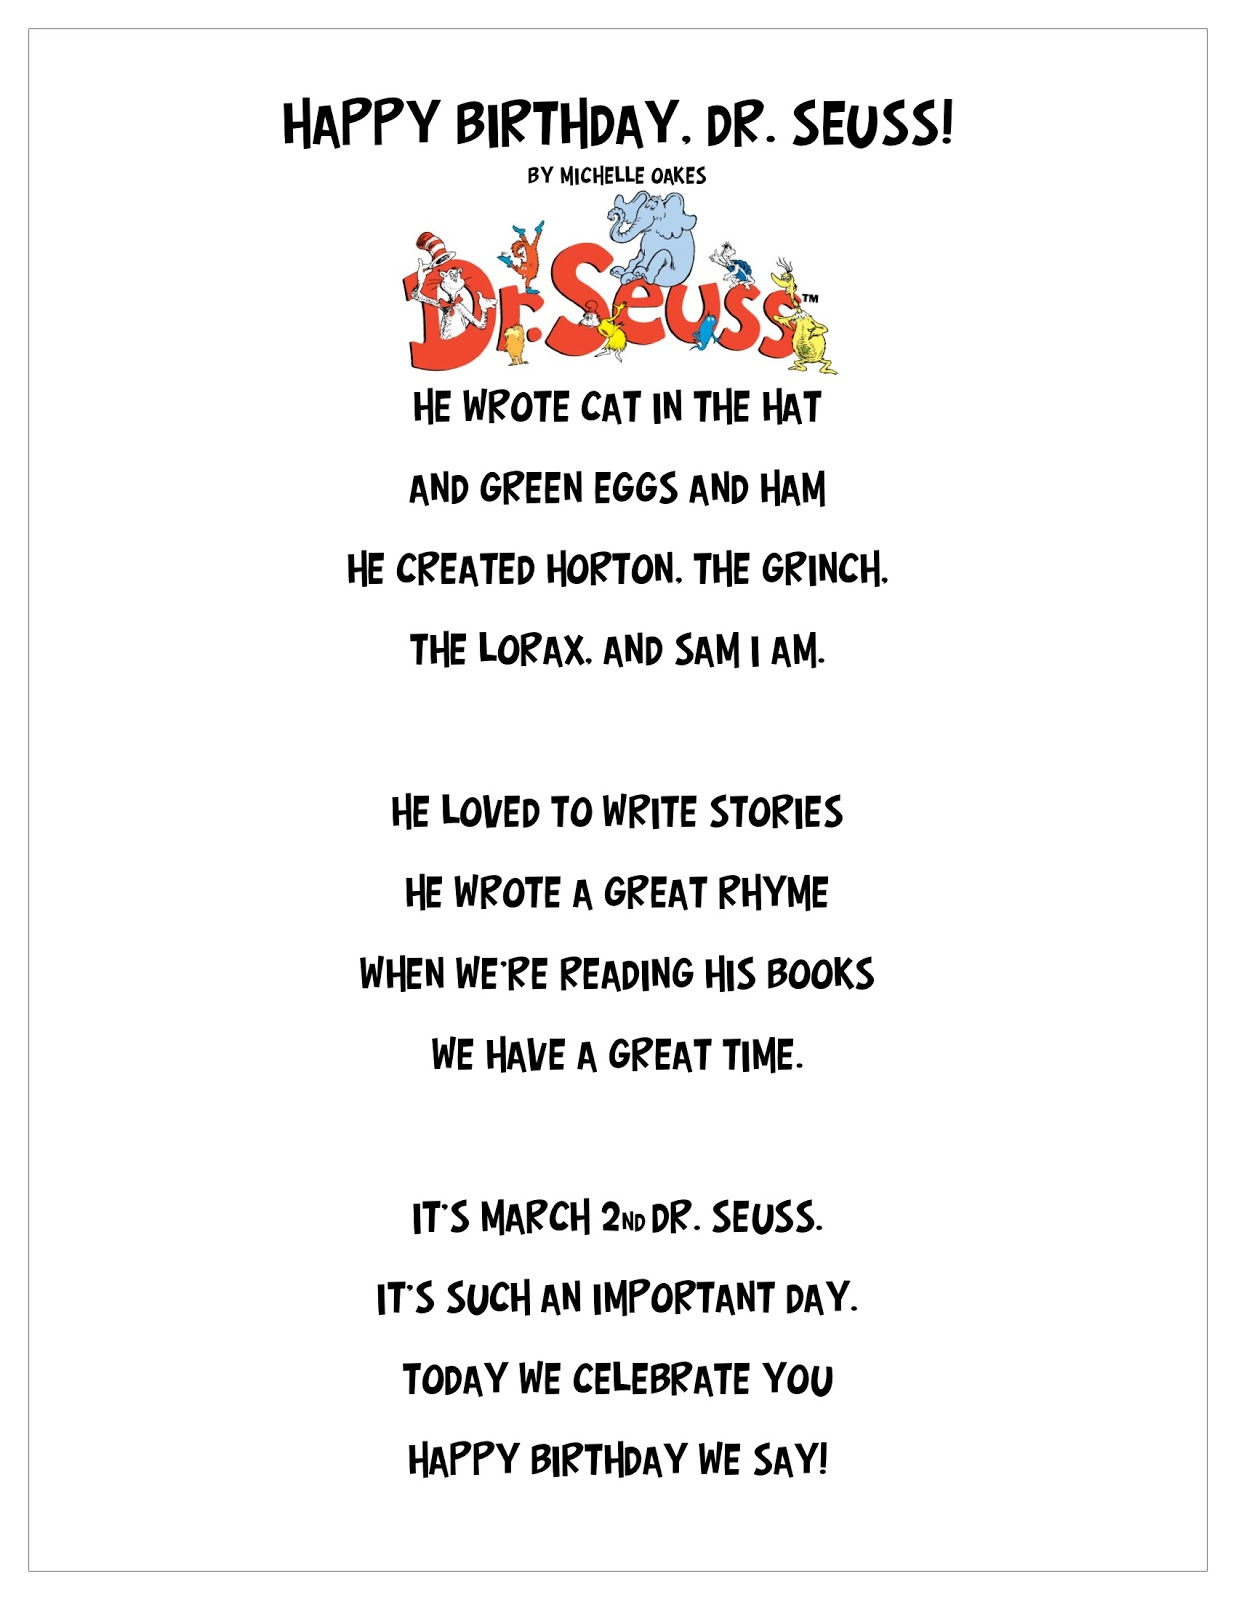 Happy Birthday, Dr. Seuss! Poem and Craft